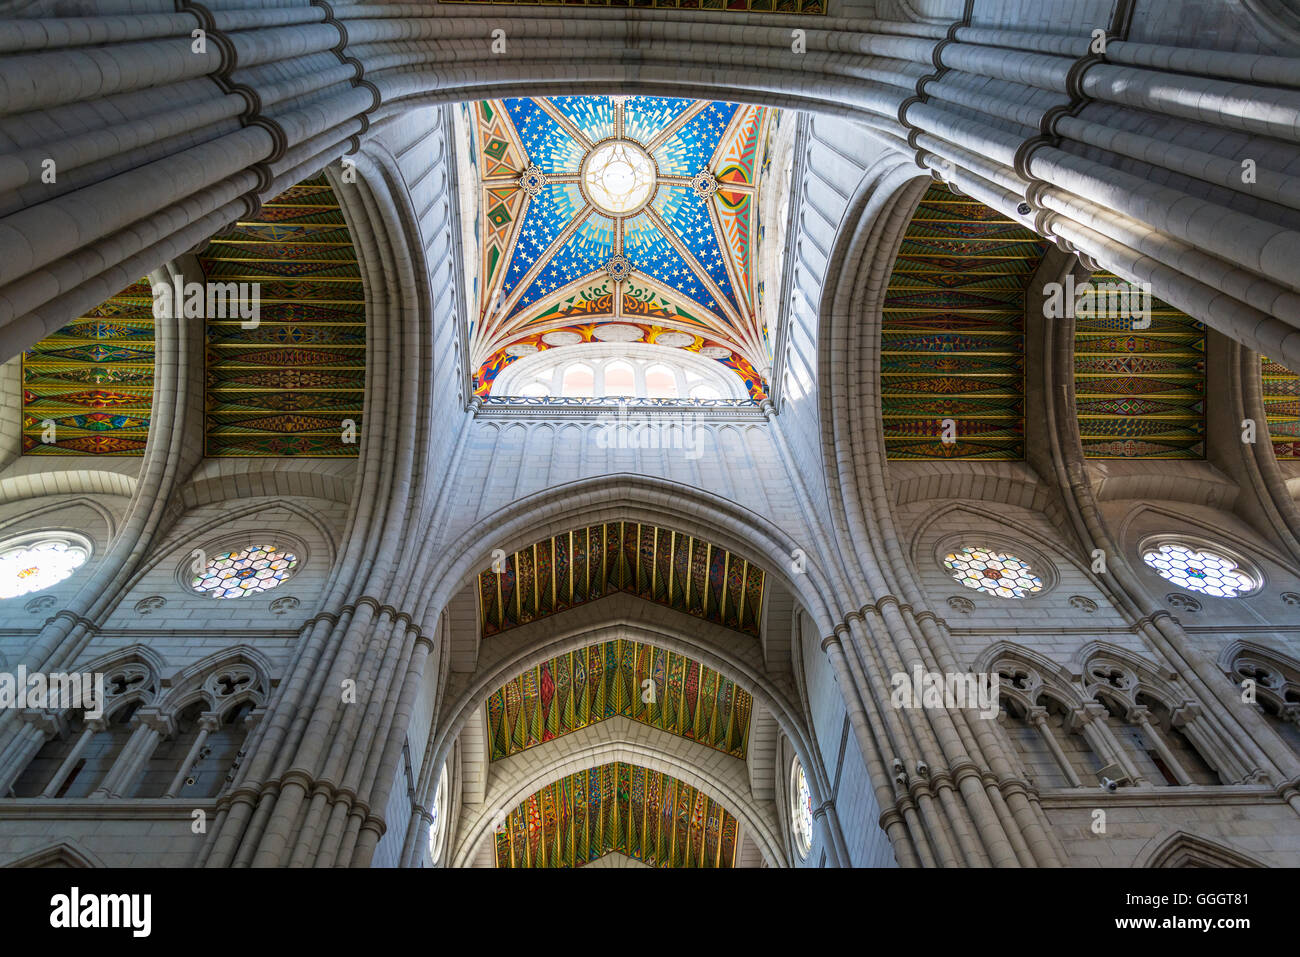 Almudena Cathedral, Square cupola of the cathedral, Madrid, Spain - Stock Image